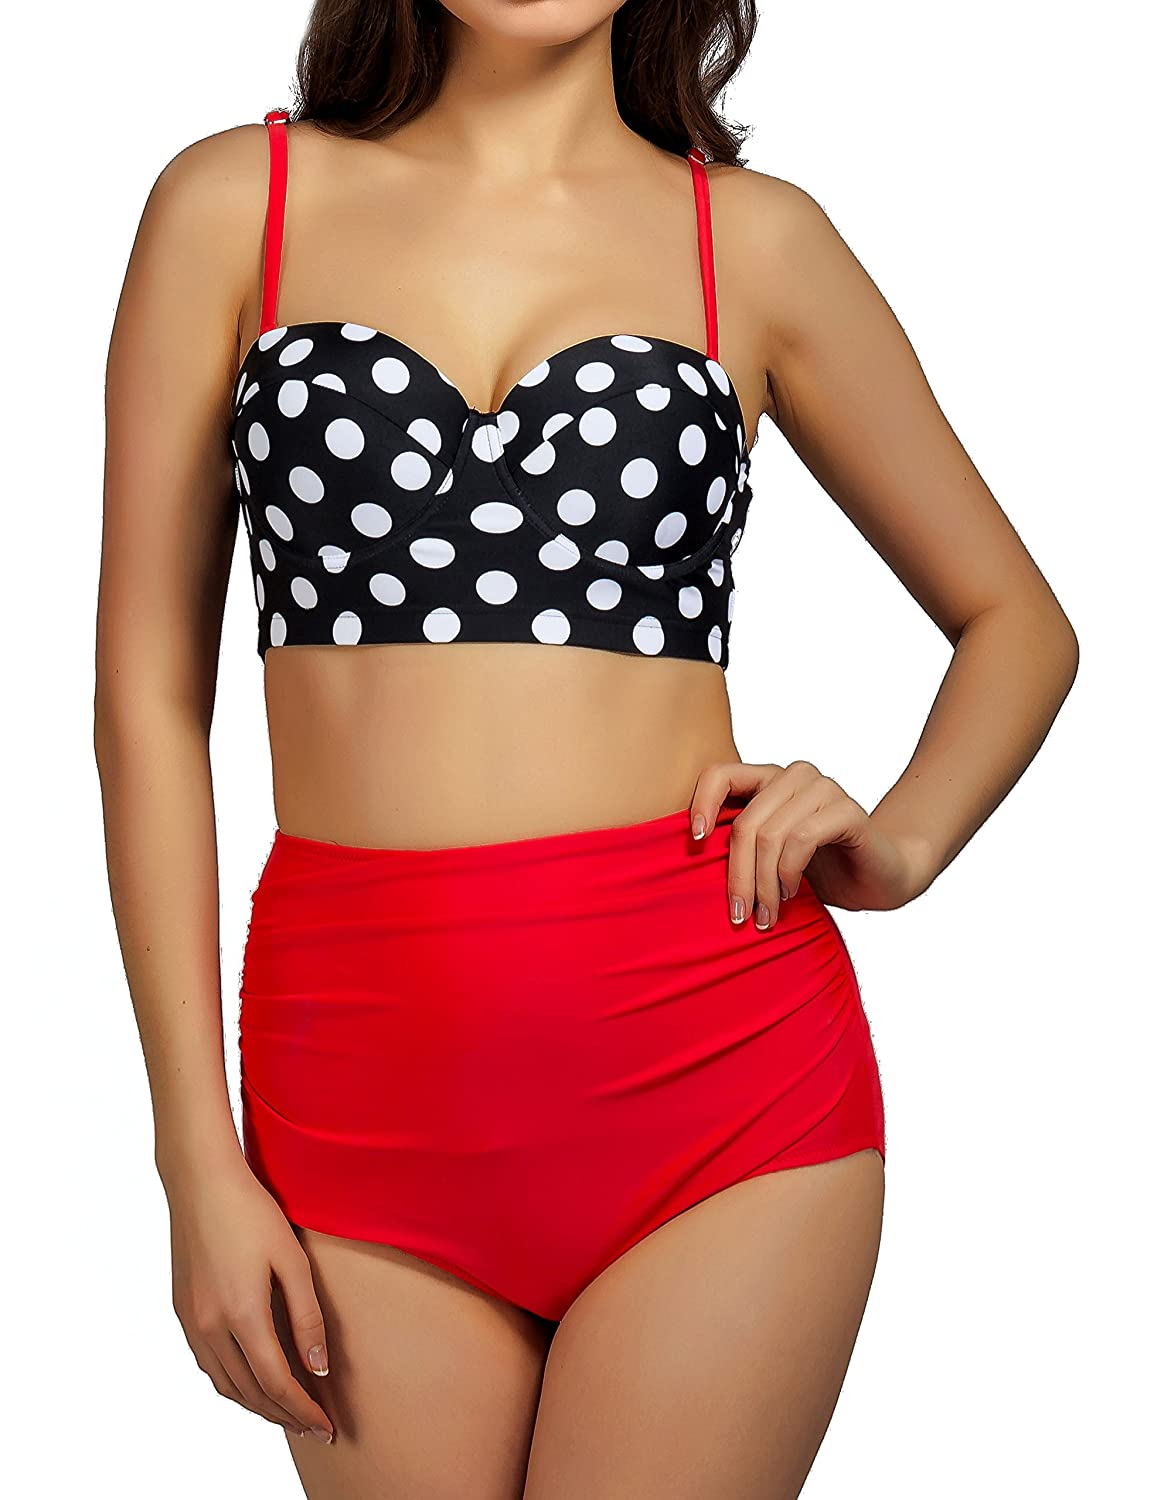 Womens Summer Polka Dots Print High Waisted Swimwear Retro Bikini Top Bandage Bottom Swimsuit Black Red Clearance Price